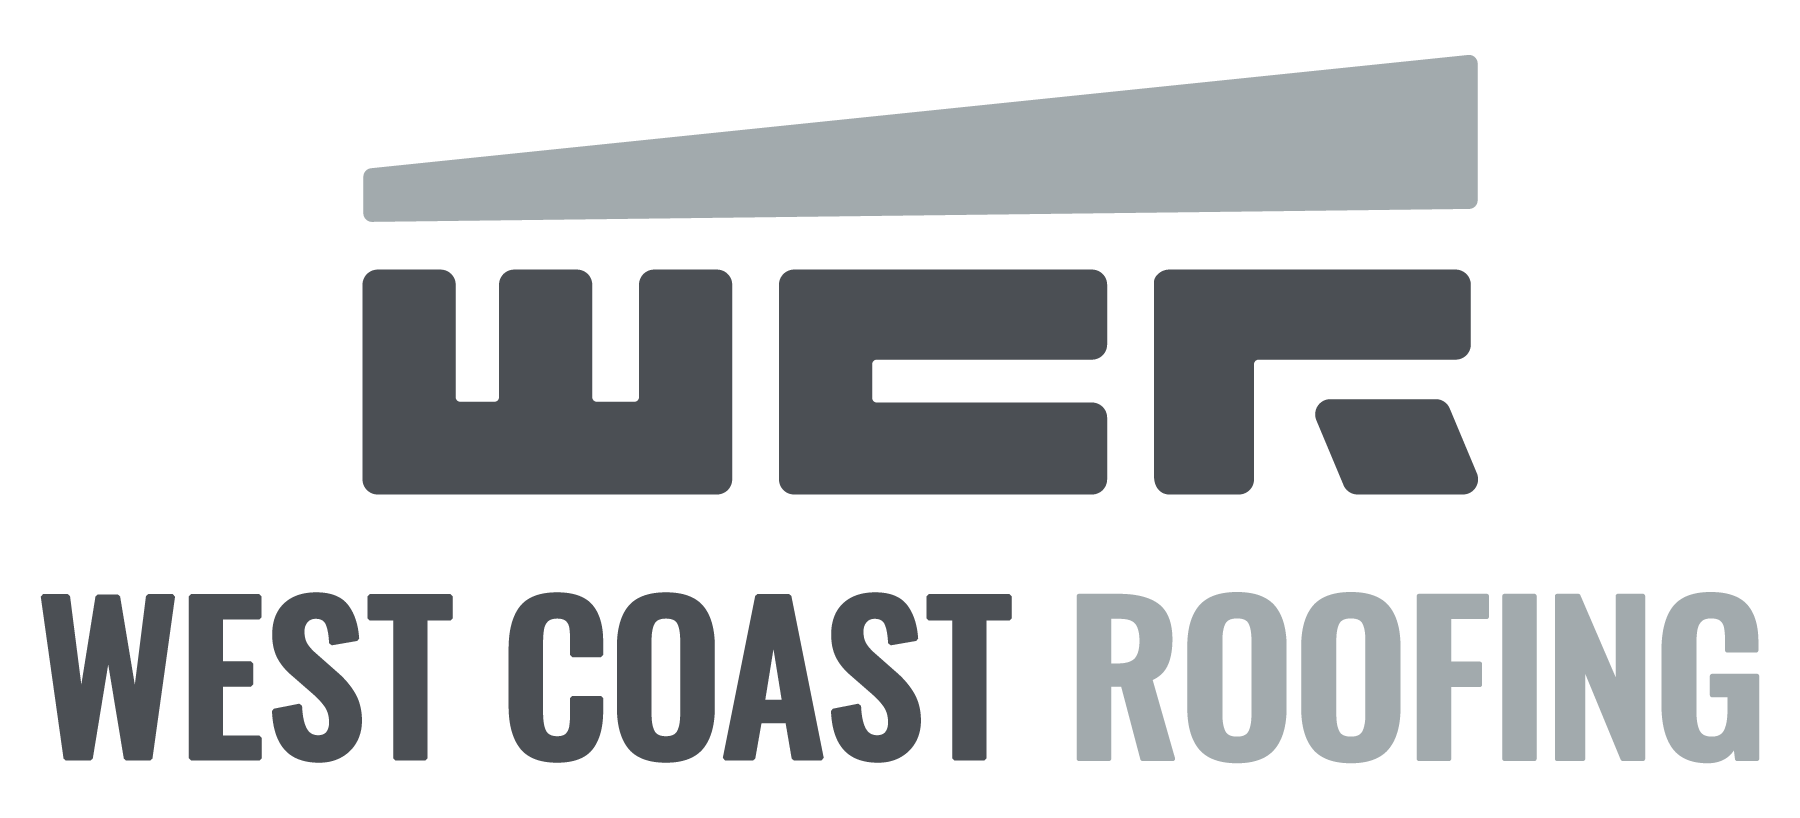 West Coast Roofing